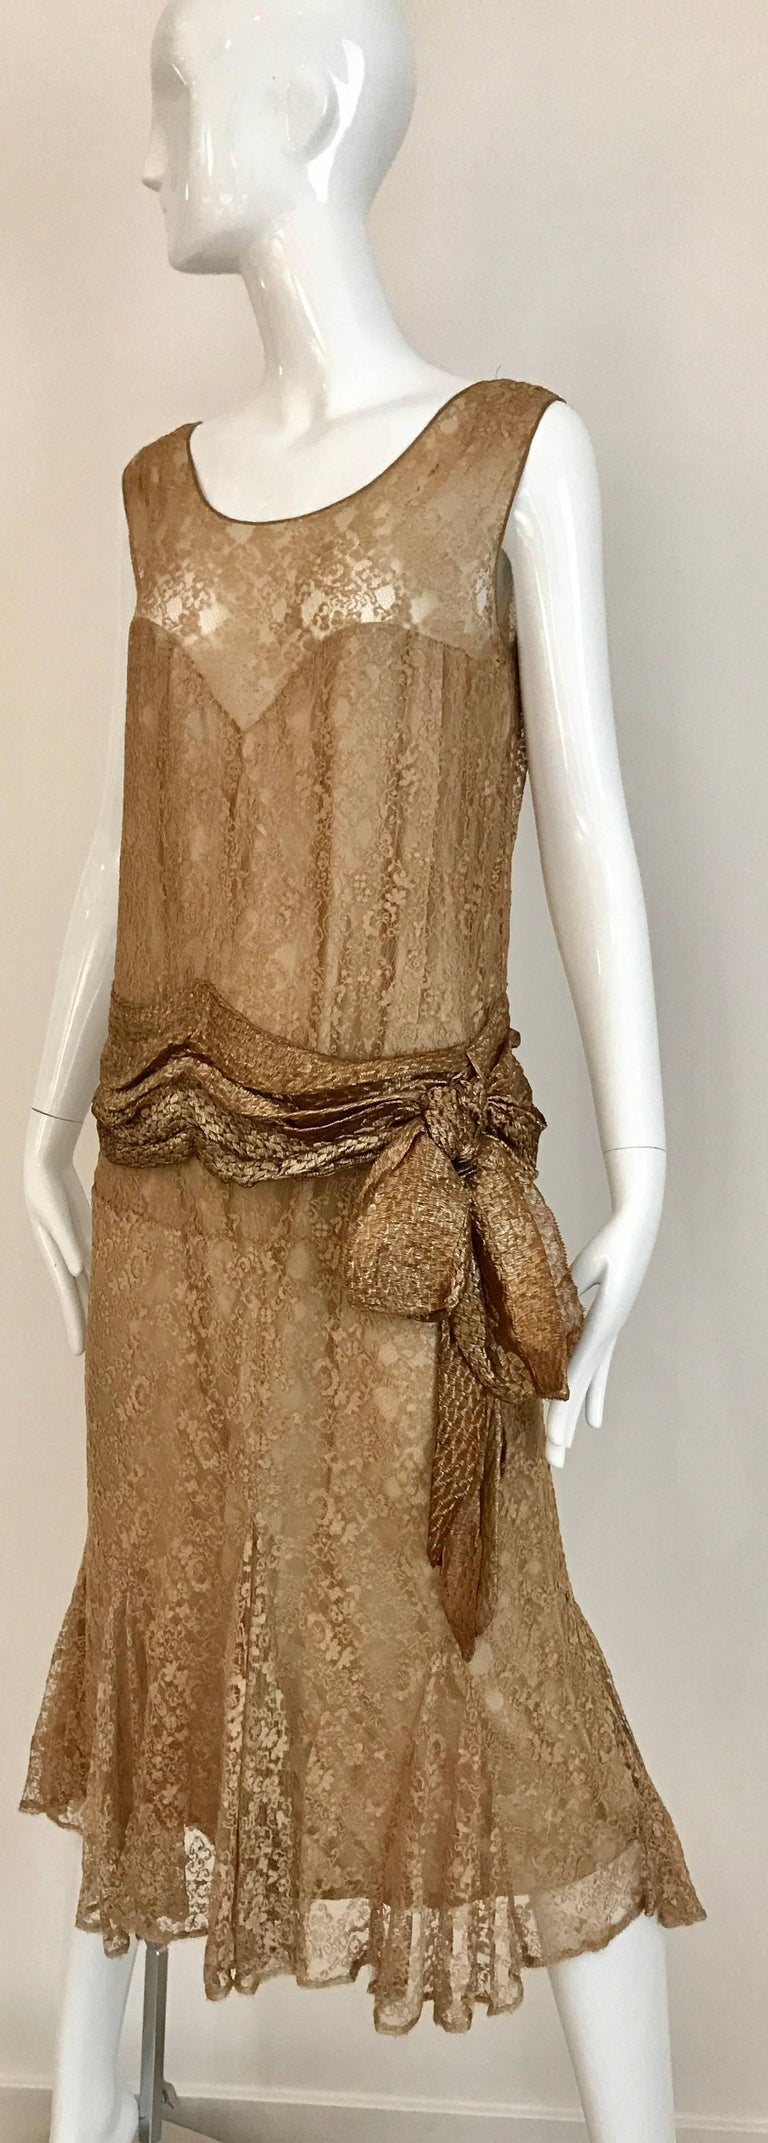 Women's 1920s Mocha Metallic Lace Flapper Dress For Sale